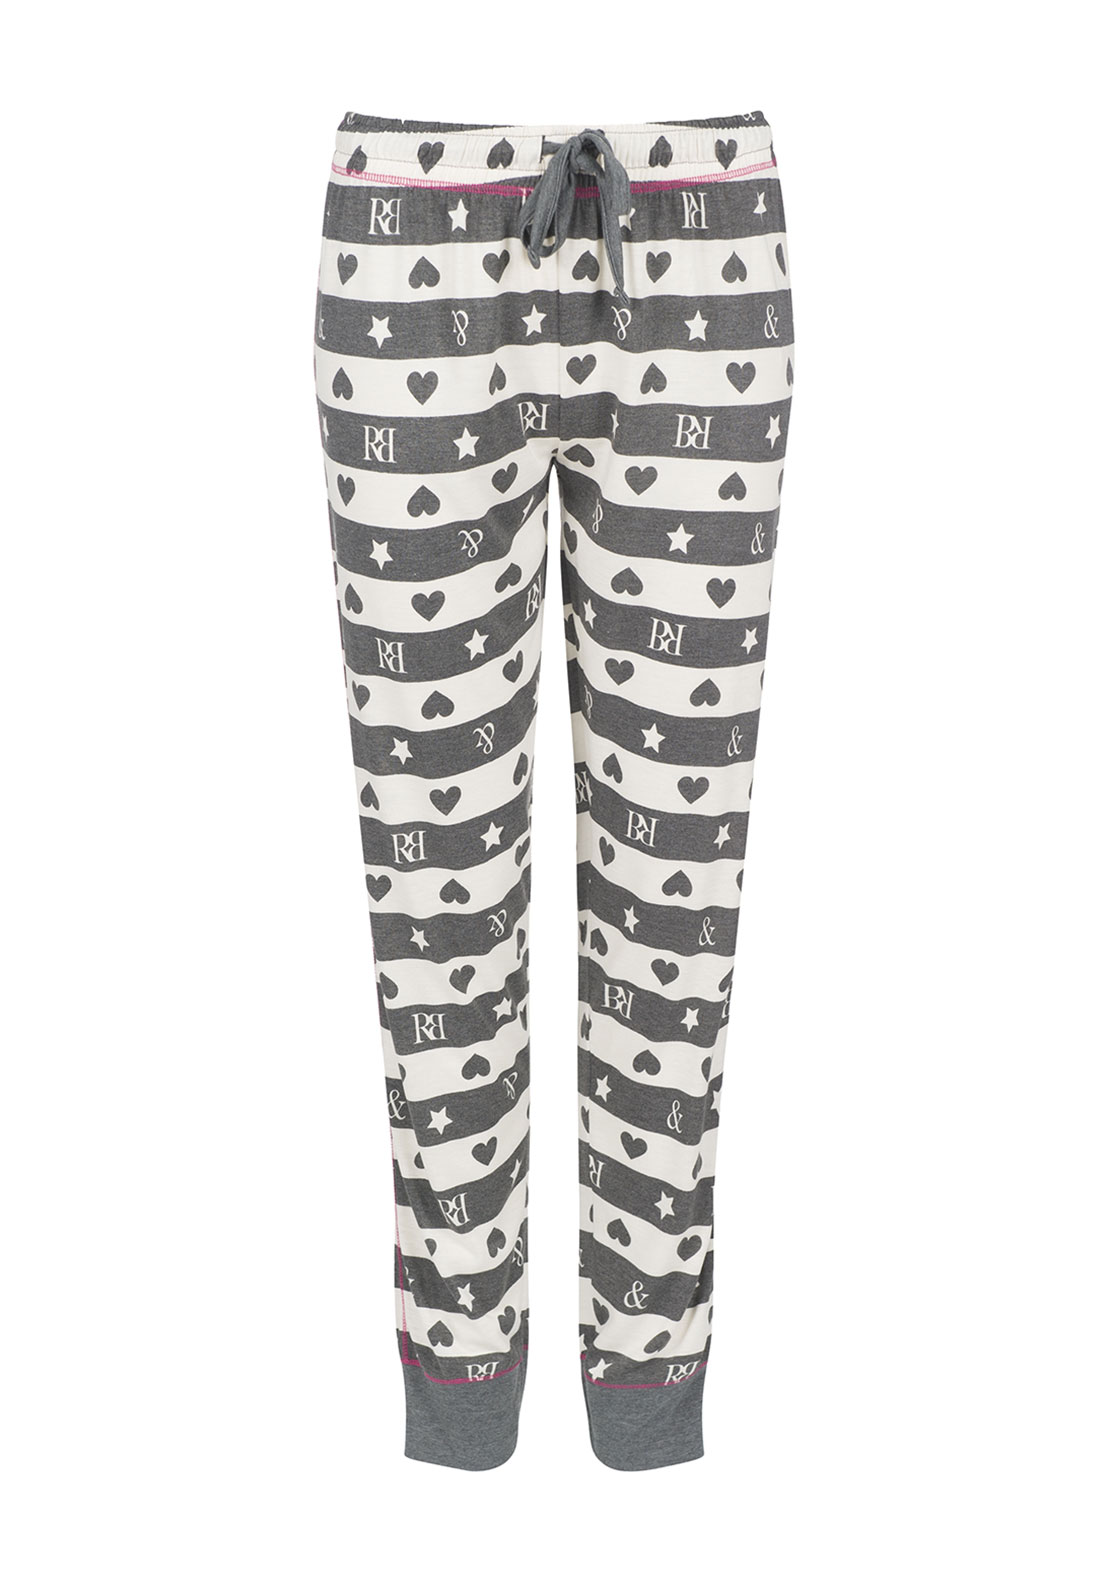 Rebelle Striped Logo Print Pyjama Bottoms, Grey